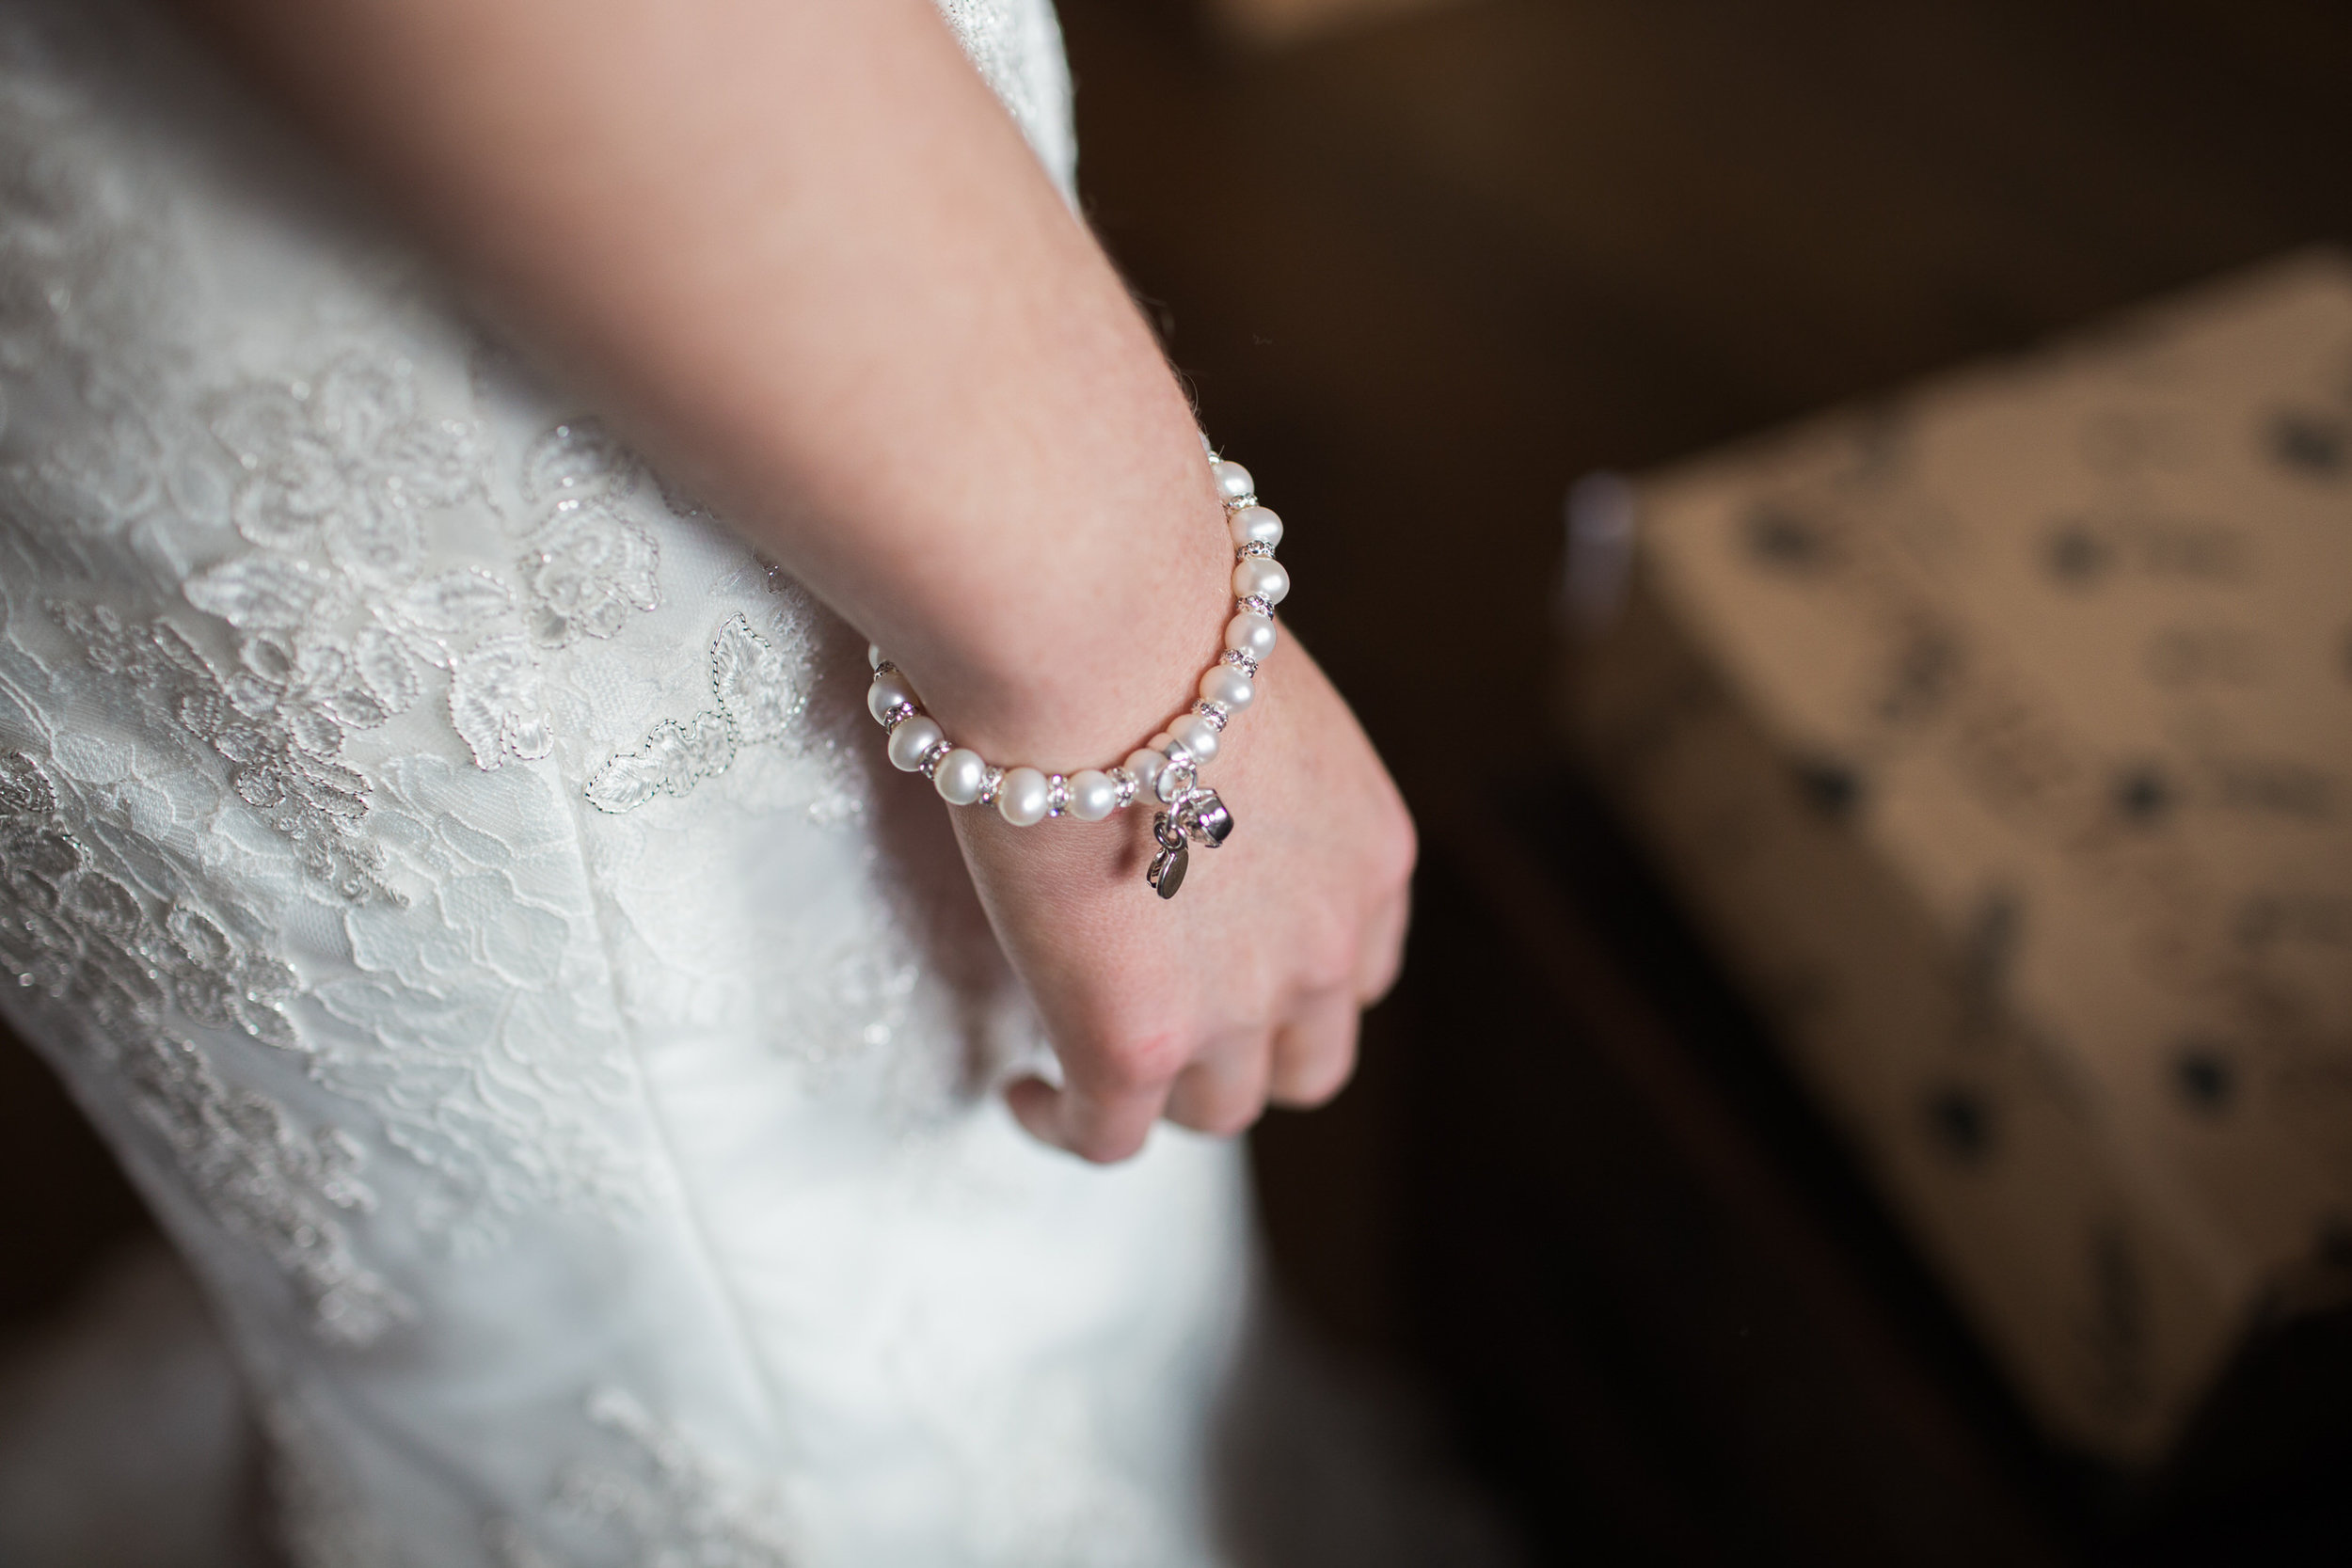 redrocks aberdeen, bridal jewellery aberdeen, logie country house, aberdeen bride, grampian weddings, Scottish wedding venue, Scottish wedding photographer, wedding photographer Scotland, Aberdeenshire wedding photographer, wedding photography aberdeen, grampian wedding photographer